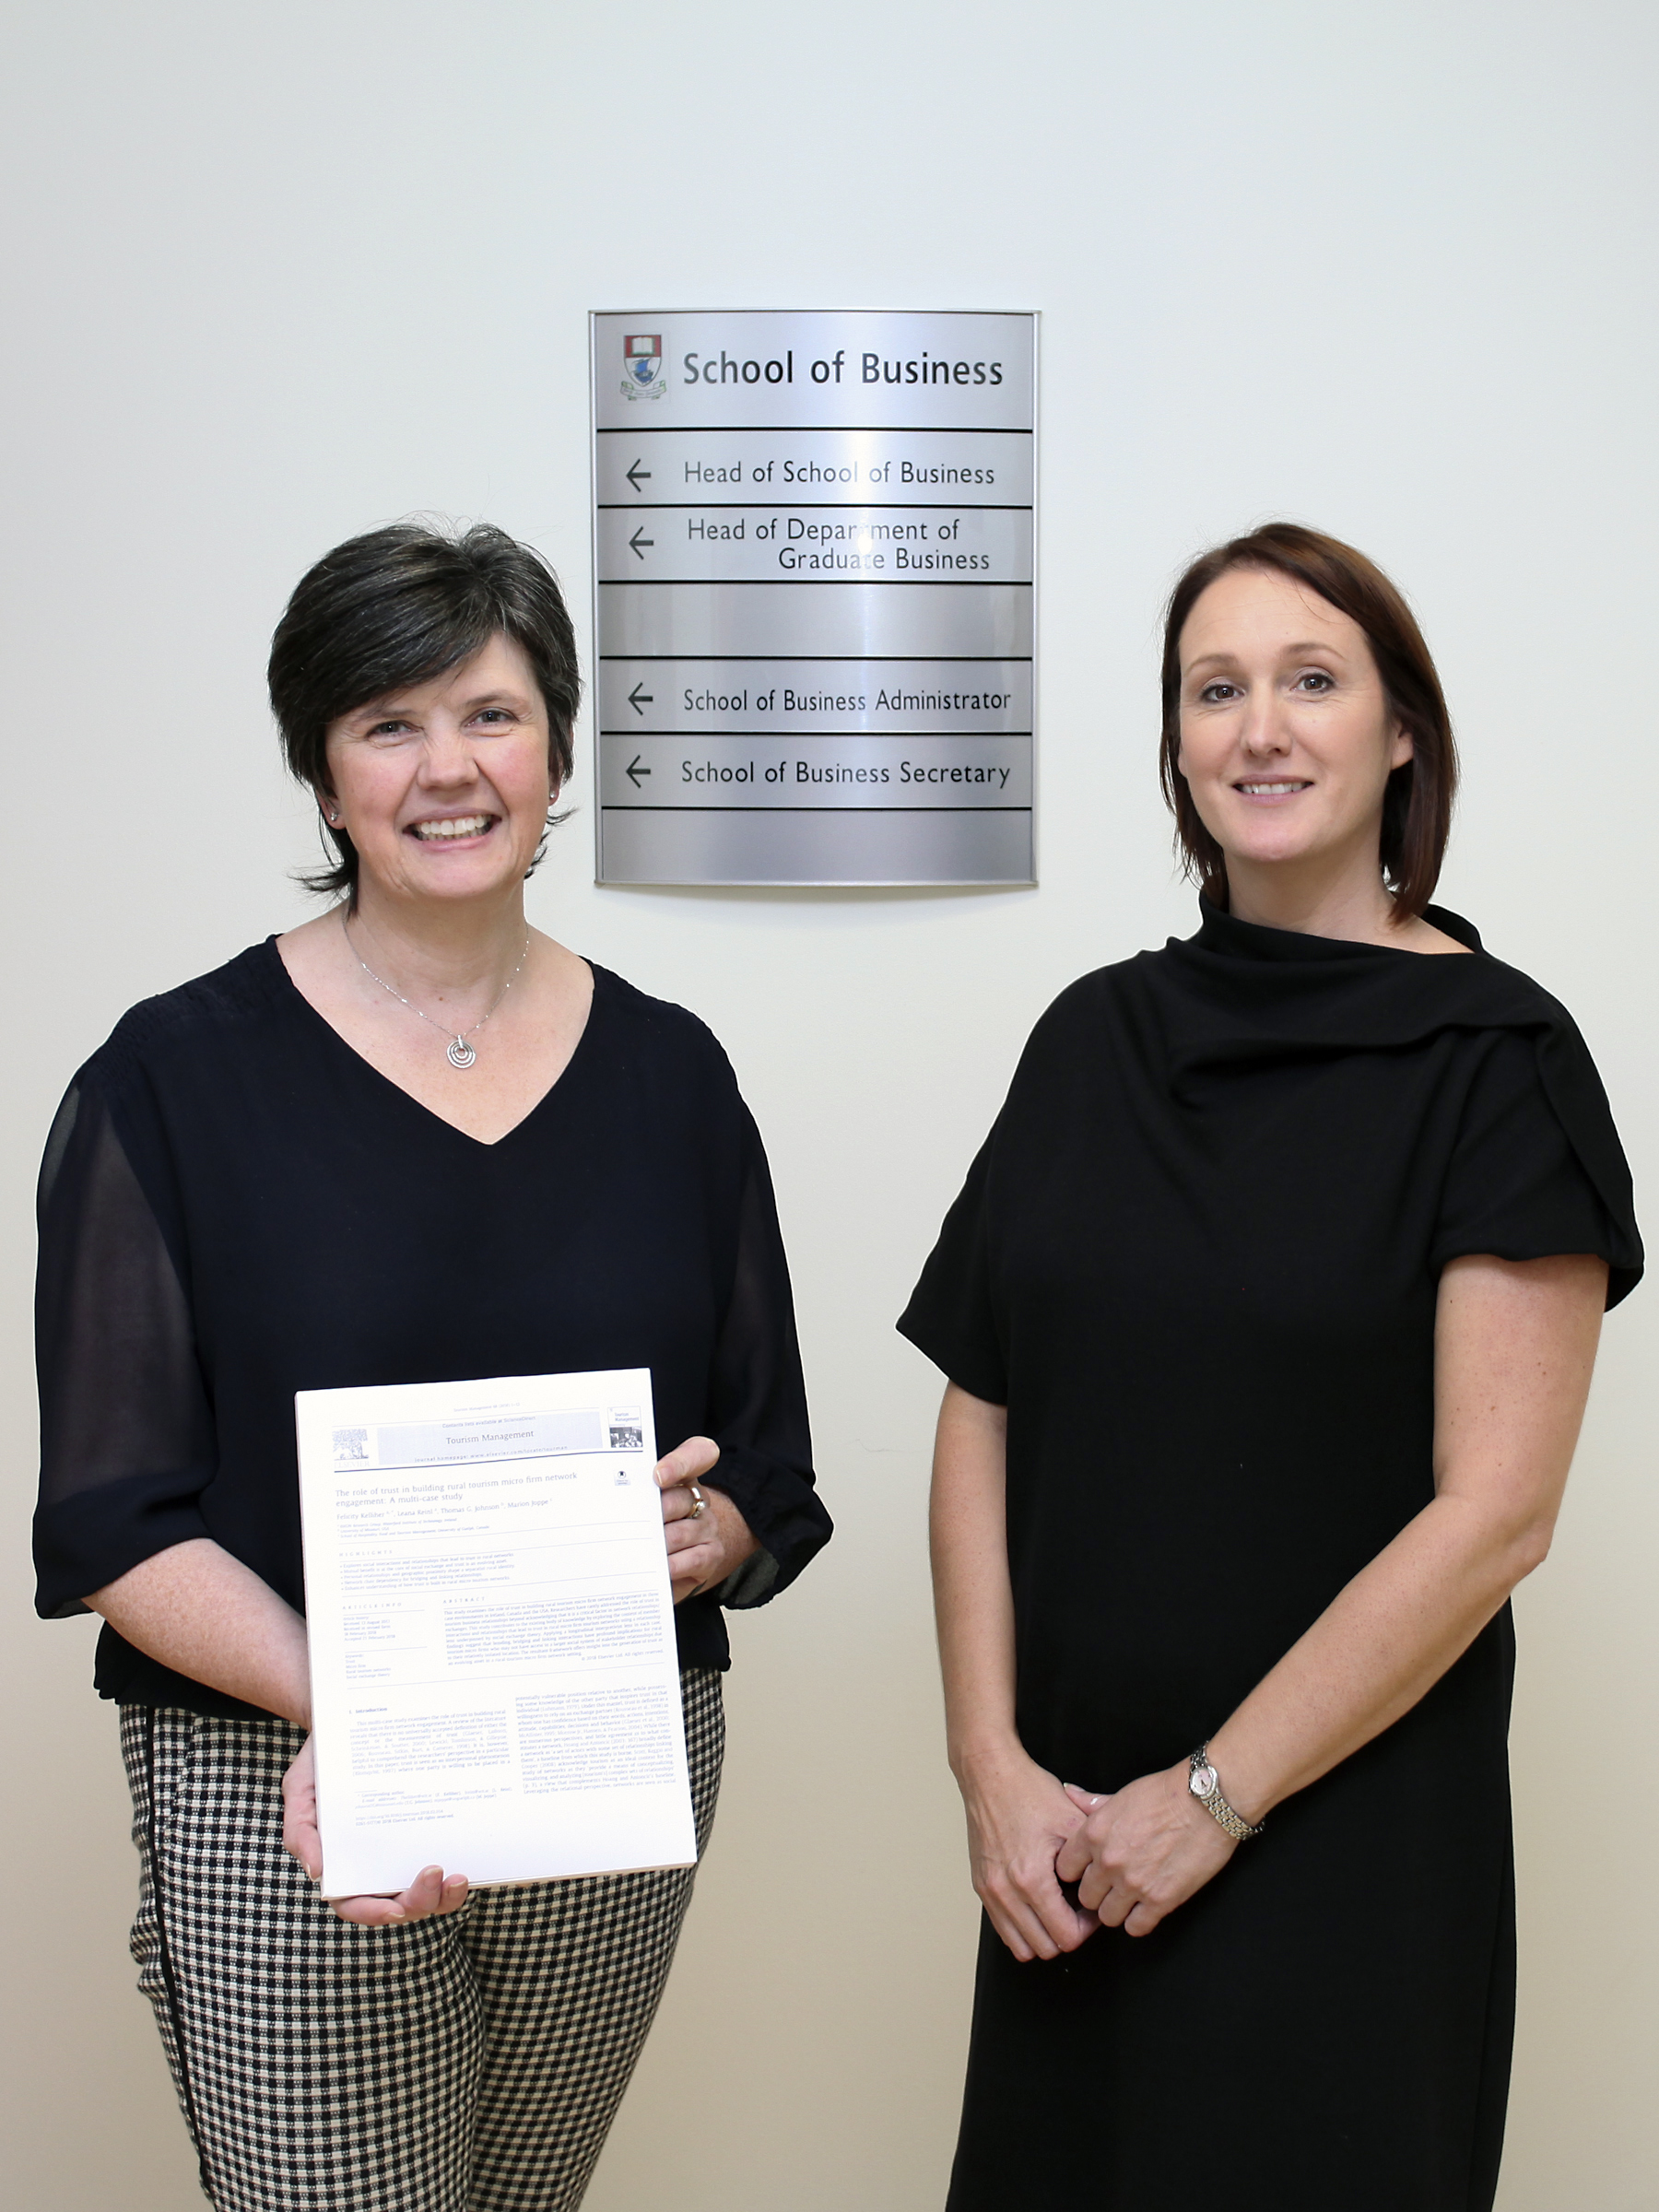 Pictured from left: Dr Felicity Kelliher and Dr Leana Reinl